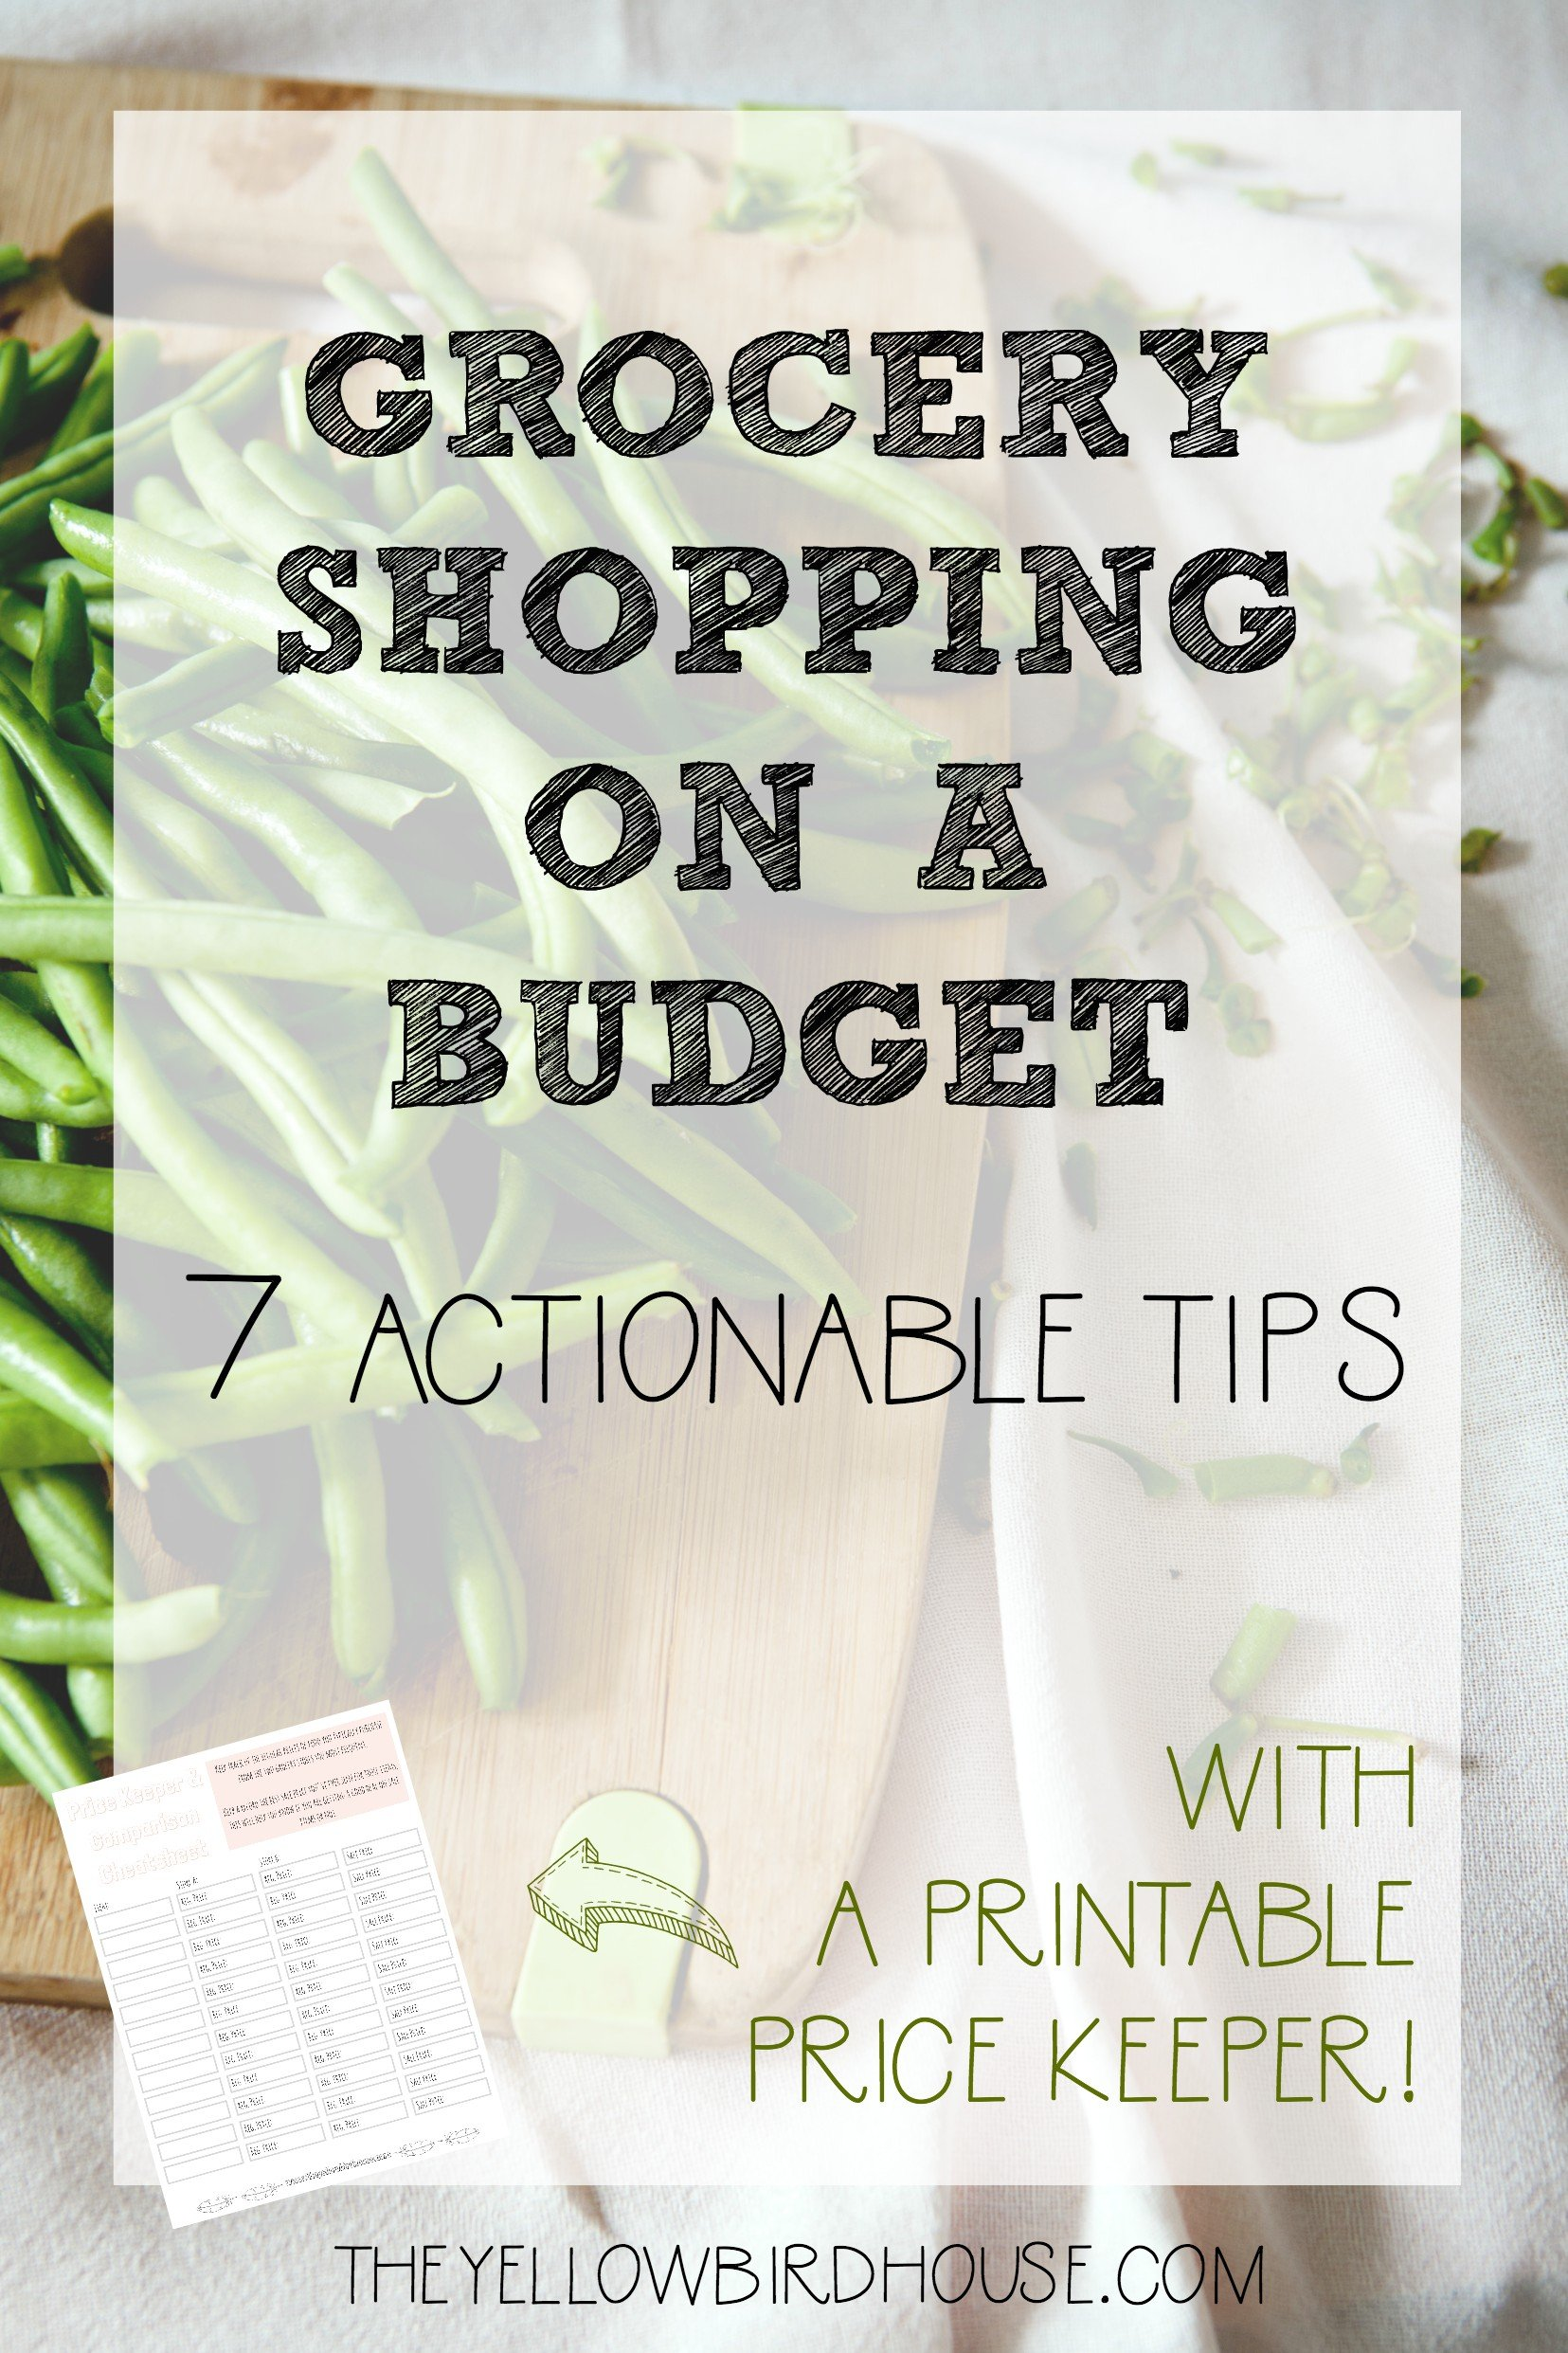 Do you find yourself overpaying for groceries? Food is expensive, and it's so easy to overspend at the grocery store. But it is totally possible to do your grocery shopping on a budget and still eat well! Use this free printable pricing cheatsheet along with my 7 actionable tips for food shopping on a tight budget. You can implement these simple tips today to start saving money on your grocery bill!